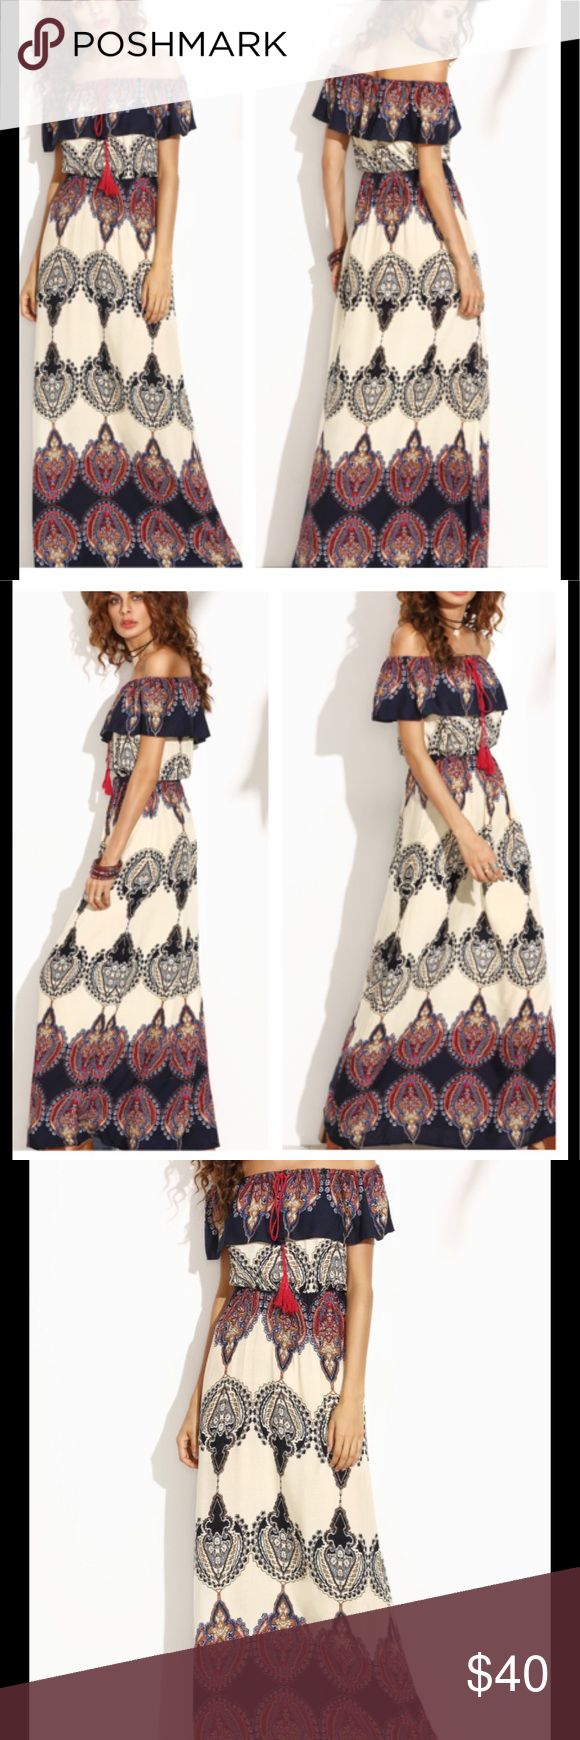 Tribal Boho Off Shoulder Dress ✨Material: 100% Rayon ✨Fabric: Fabric has no stretch ✨Bust(Cm): XS:94cm, S:98cm, M:102cm, L:106cm ✨Waist Size(Cm): XS:60cm, S:64cm, M:68cm, L:72cm ✨Length(Cm): XS:154cm, S:155cm, M:156cm, L:157cm ✨Please allow 14 days for delivery  ✨Brand used for exposure Missguided Dresses Maxi